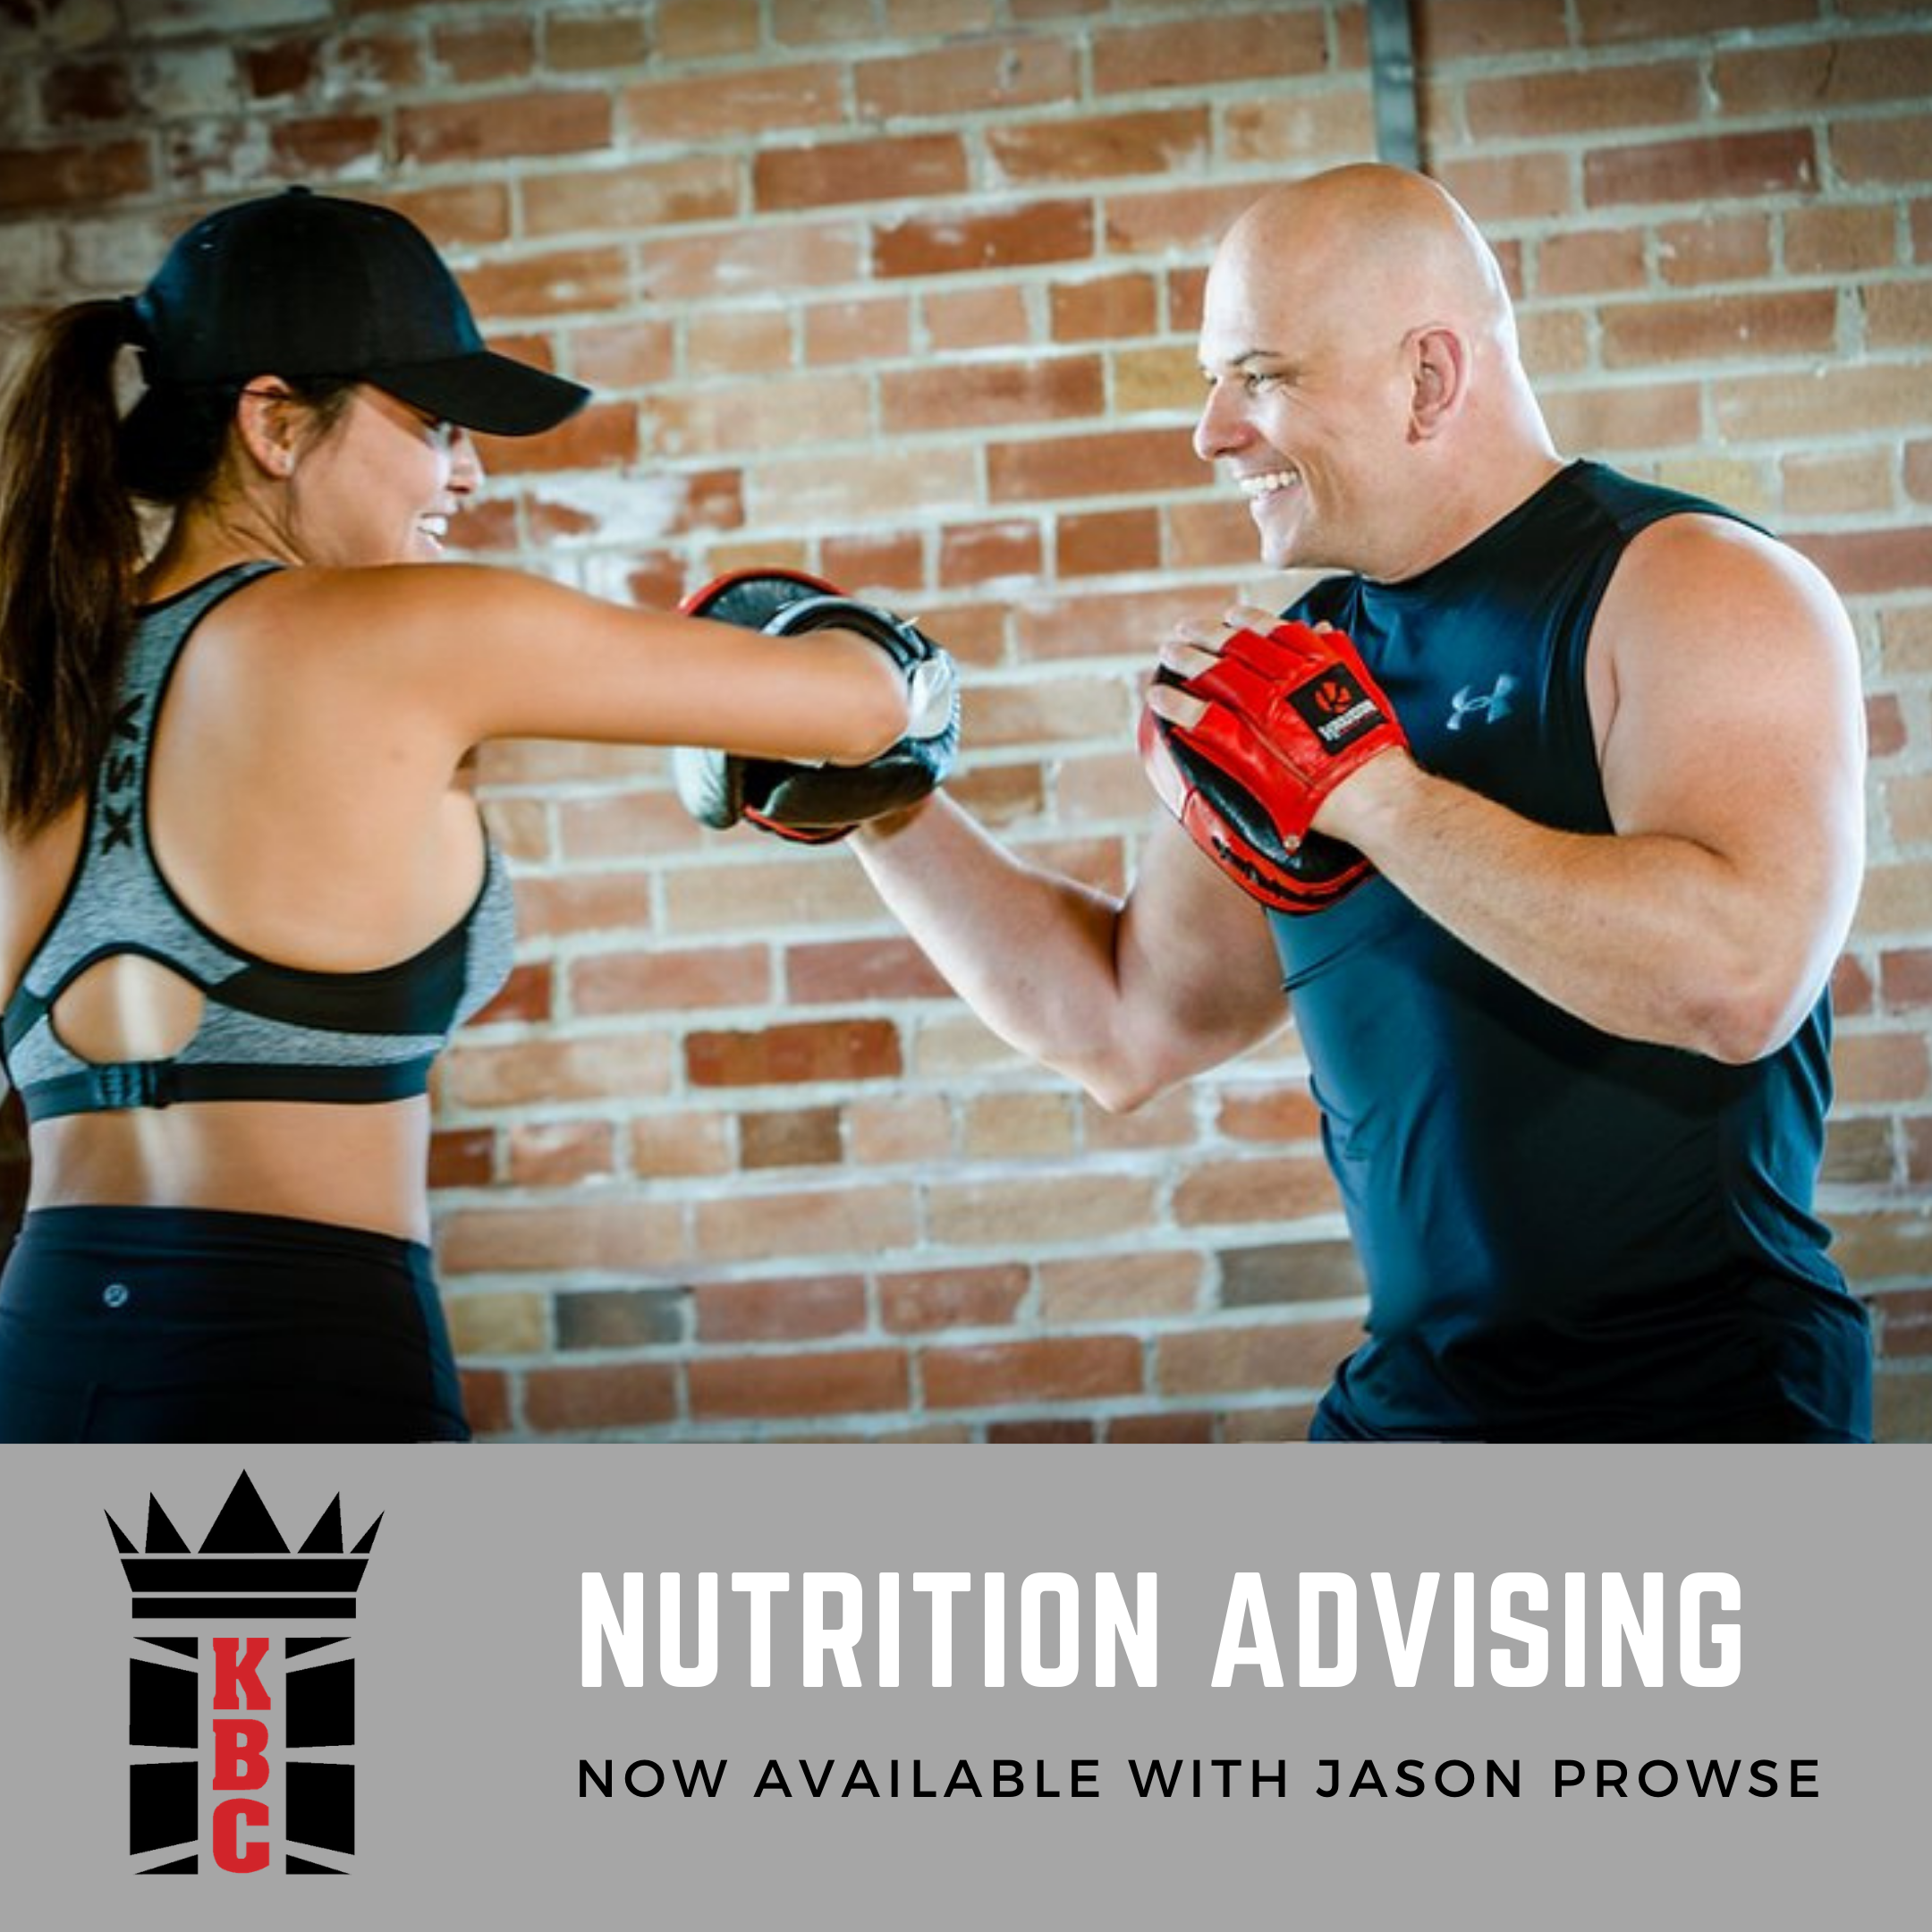 Introducing: Nutrition Advising with Jason Prowse!